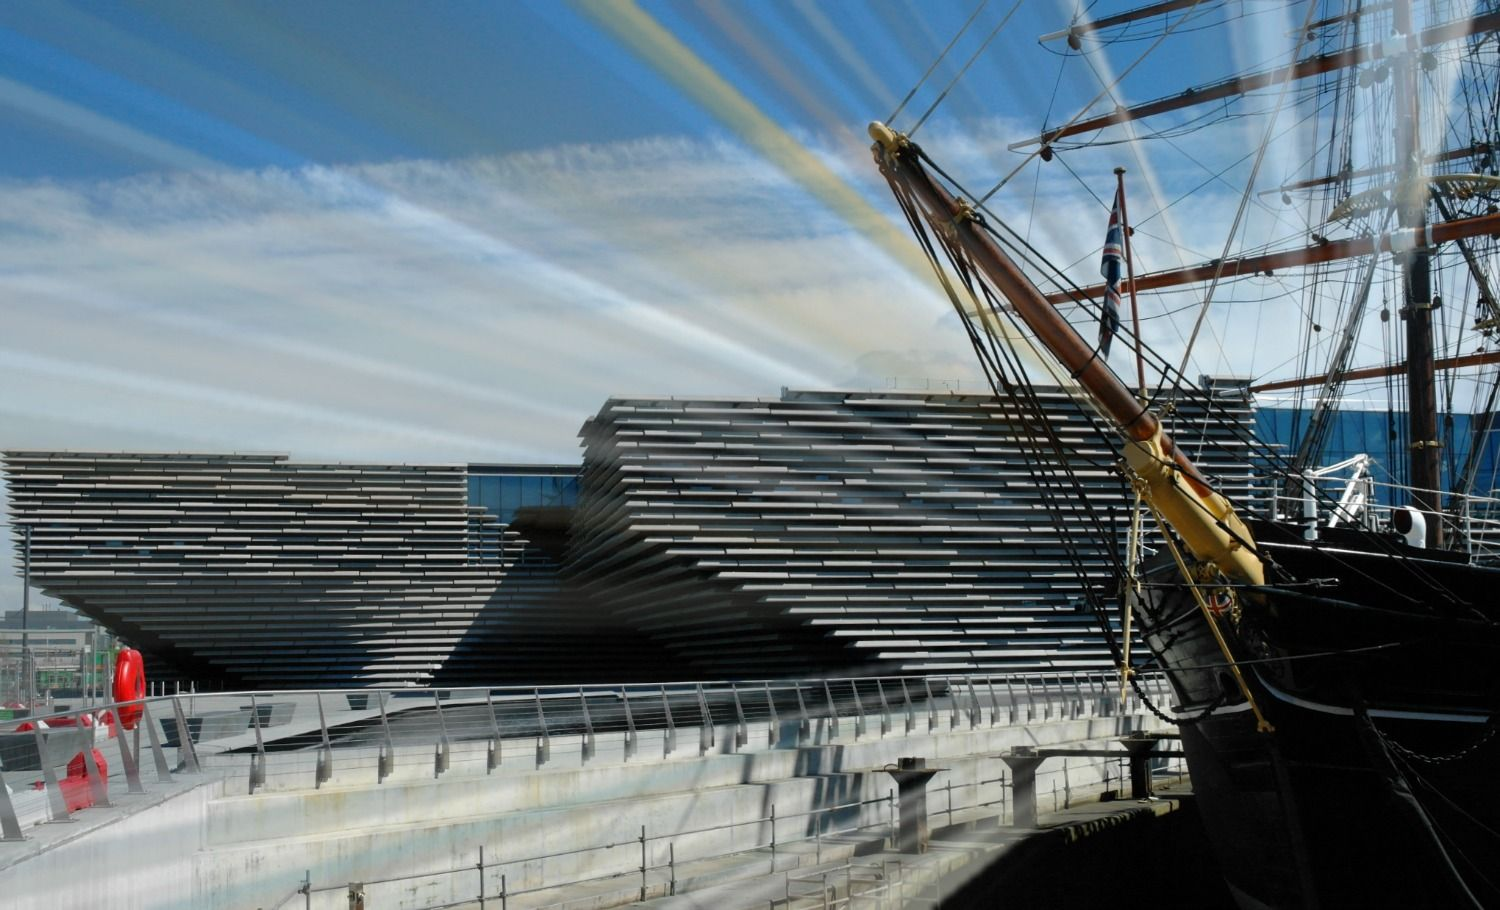 Here's a suitably arty-smarty picture of the new V & A Dundee, Scotland's first museum of design. It will be the only V&A museum in the world outside London, England: an international centre for design, a place of inspiration, discovery and learning. (According to the press information.) The famous  RRS Discovery , long after its Antarctic adventures, is, uhmm, parked nearby.